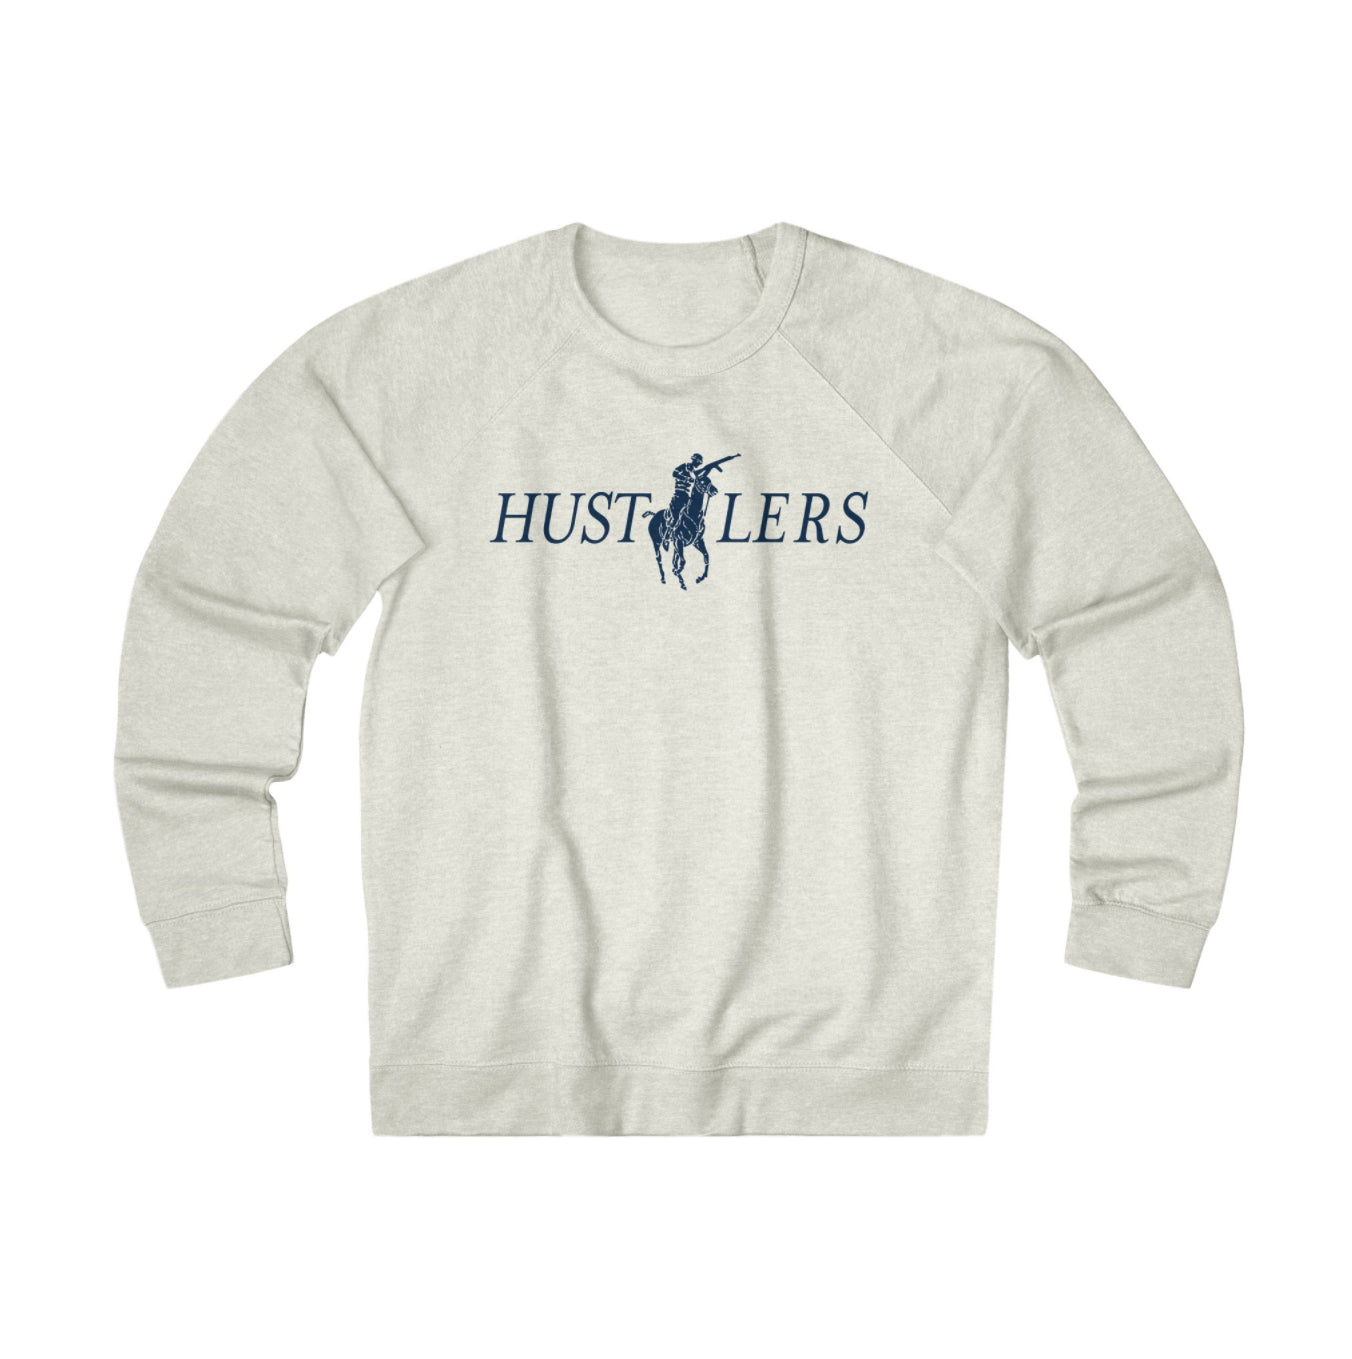 Hustlers Terry Crew - Light Beige - Modern Appeal